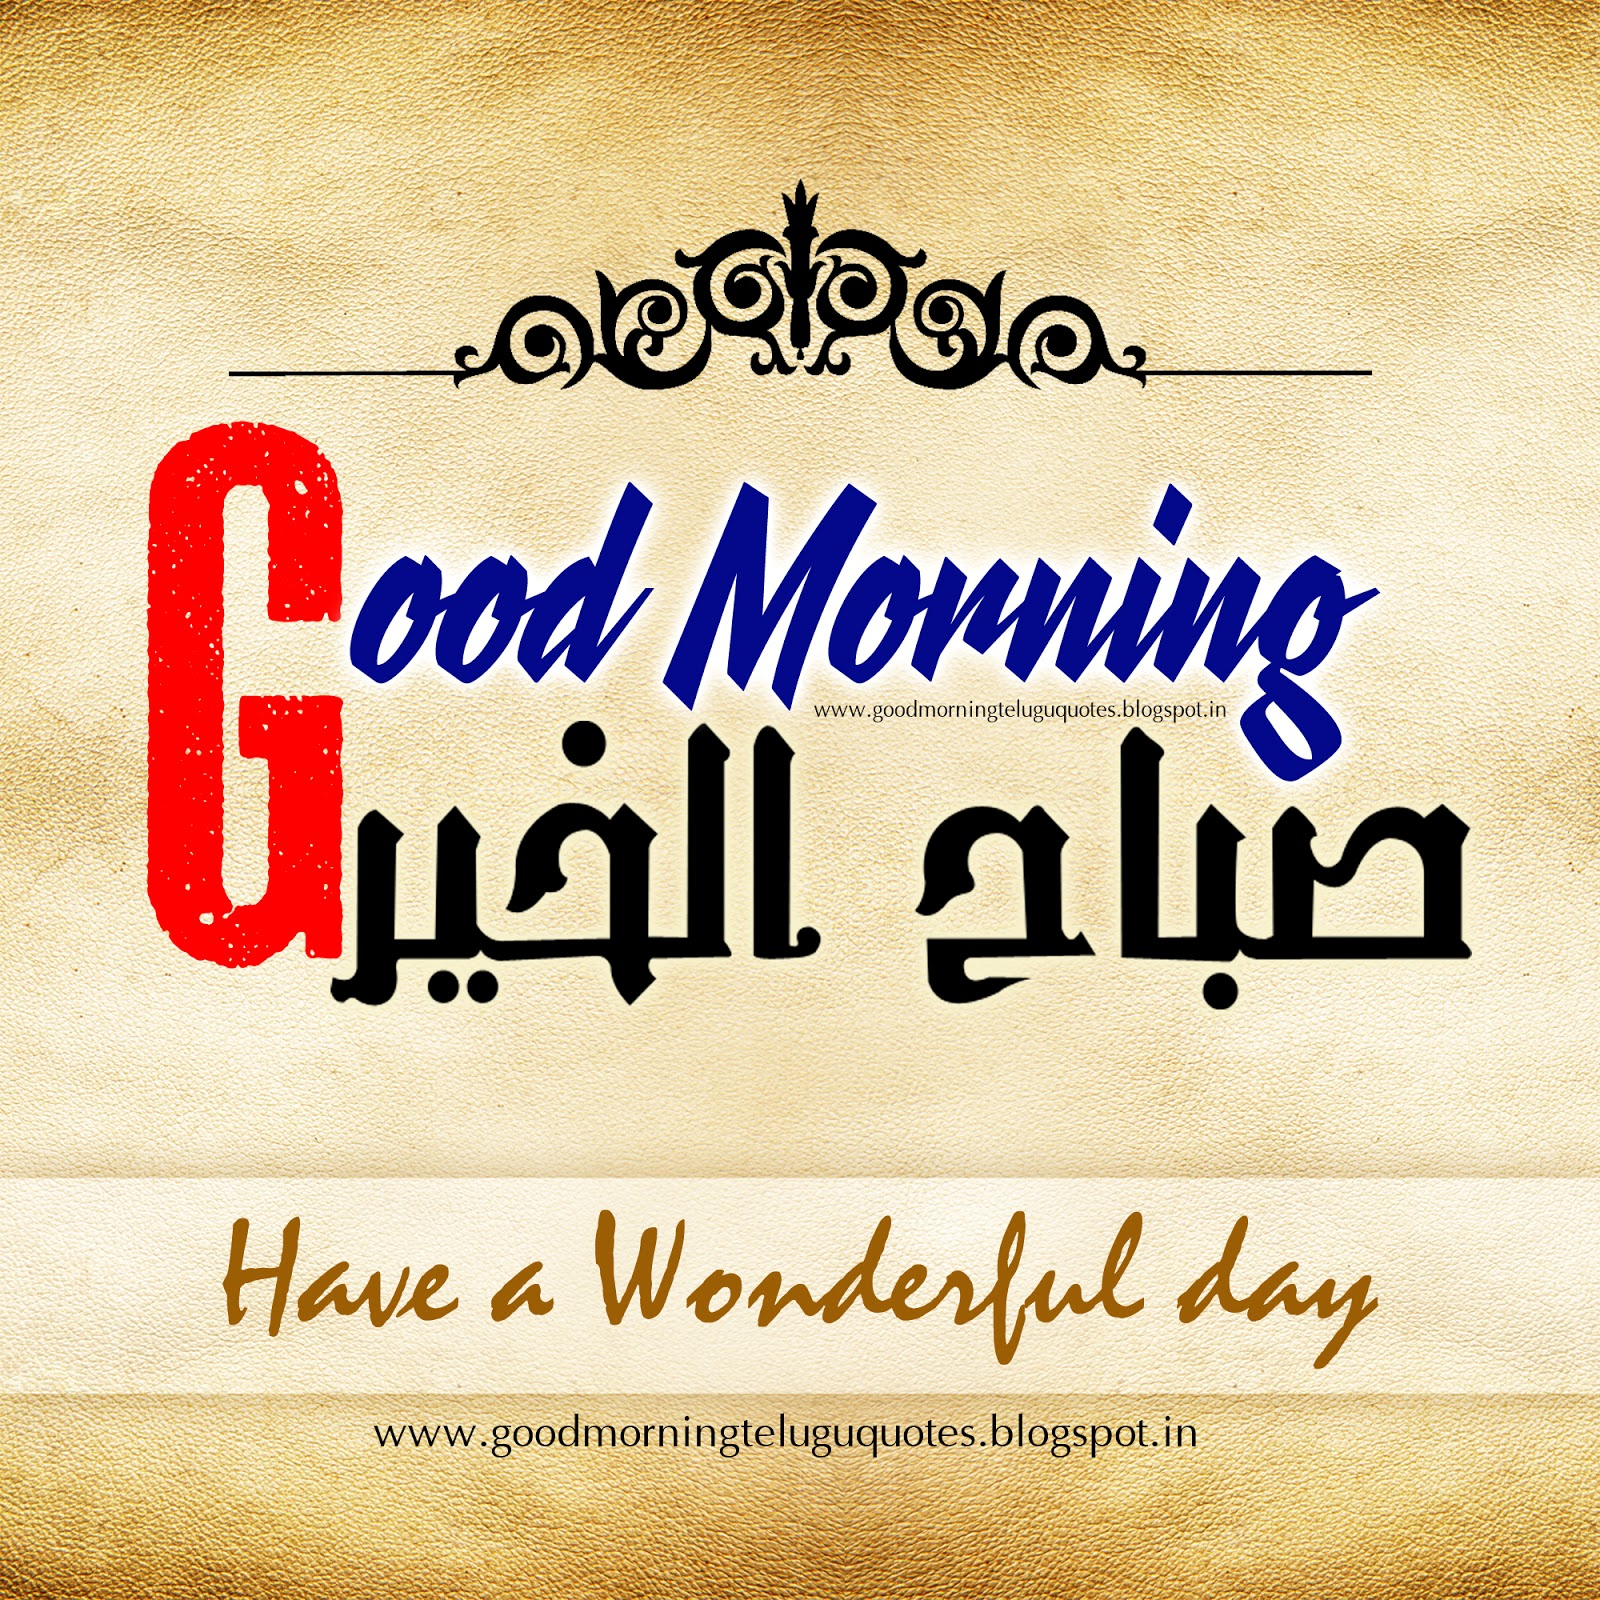 Good Morning Quotes And Greetings In English Arabic